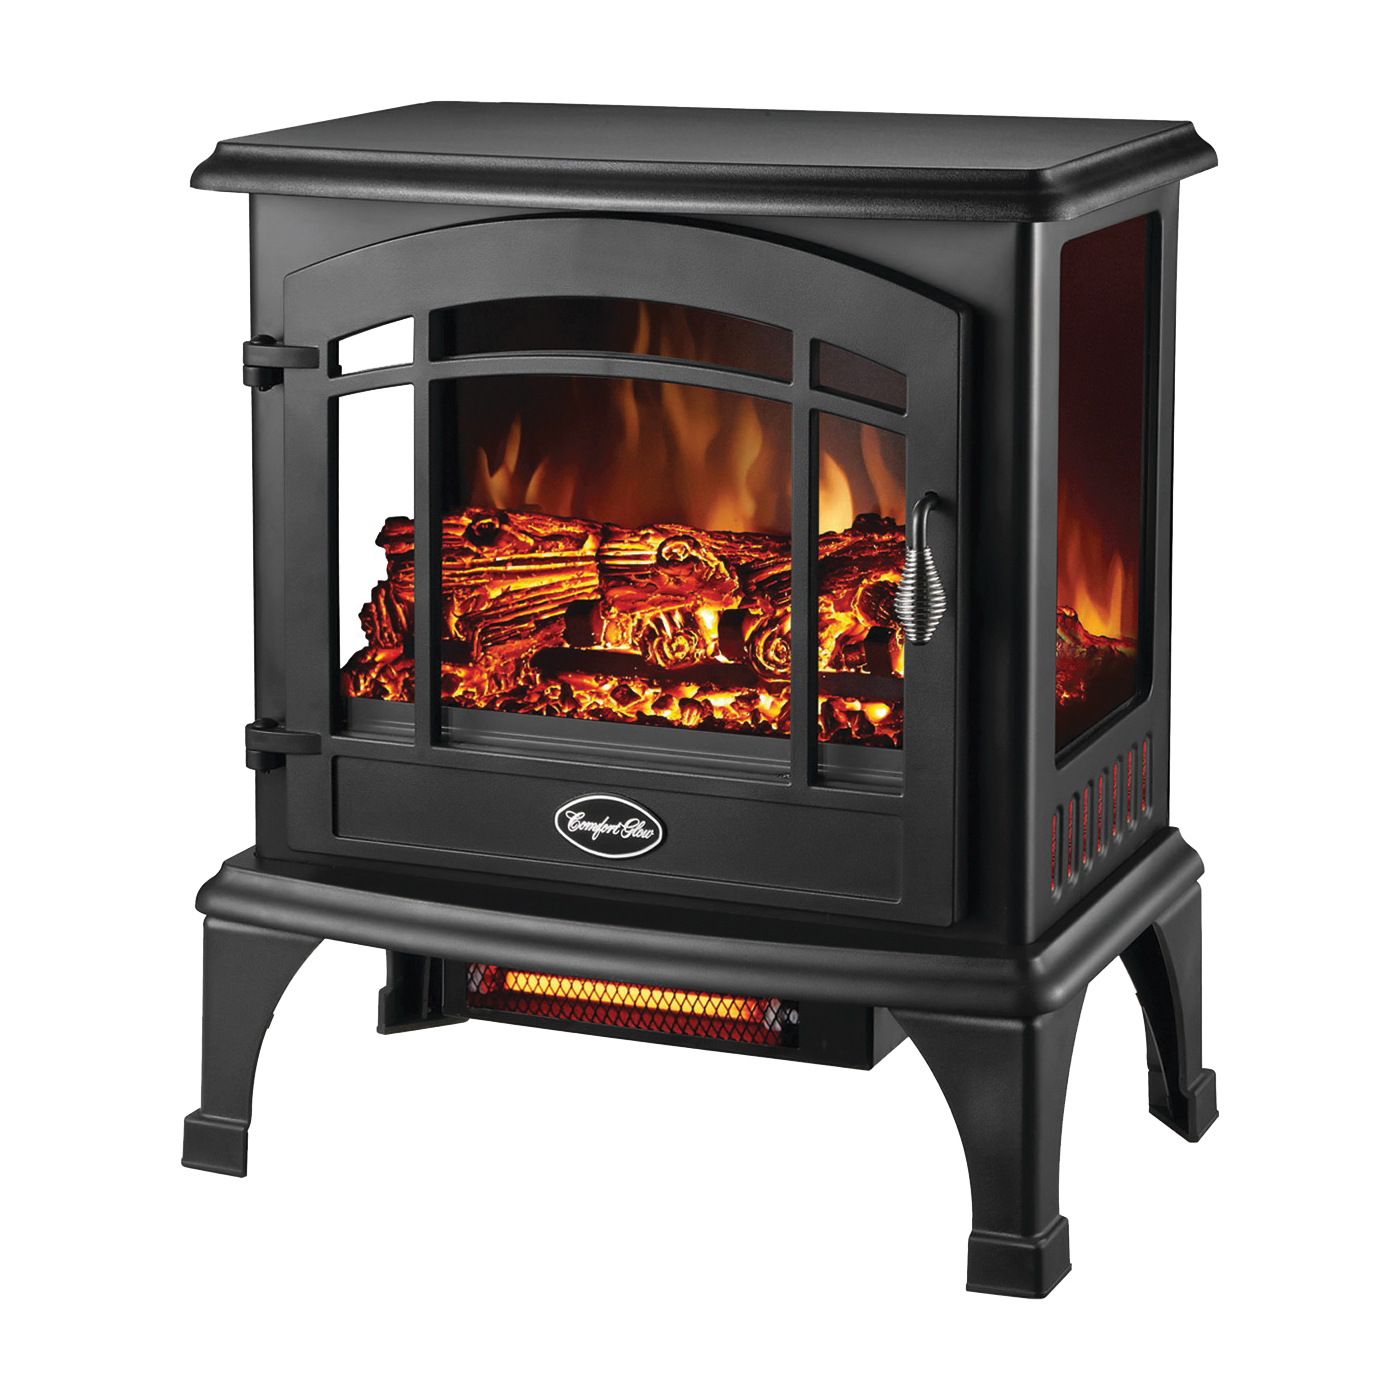 Picture of Comfort Glow EQS5140 Electric Stove, 120 V, Thermostat Control, Steel, Black